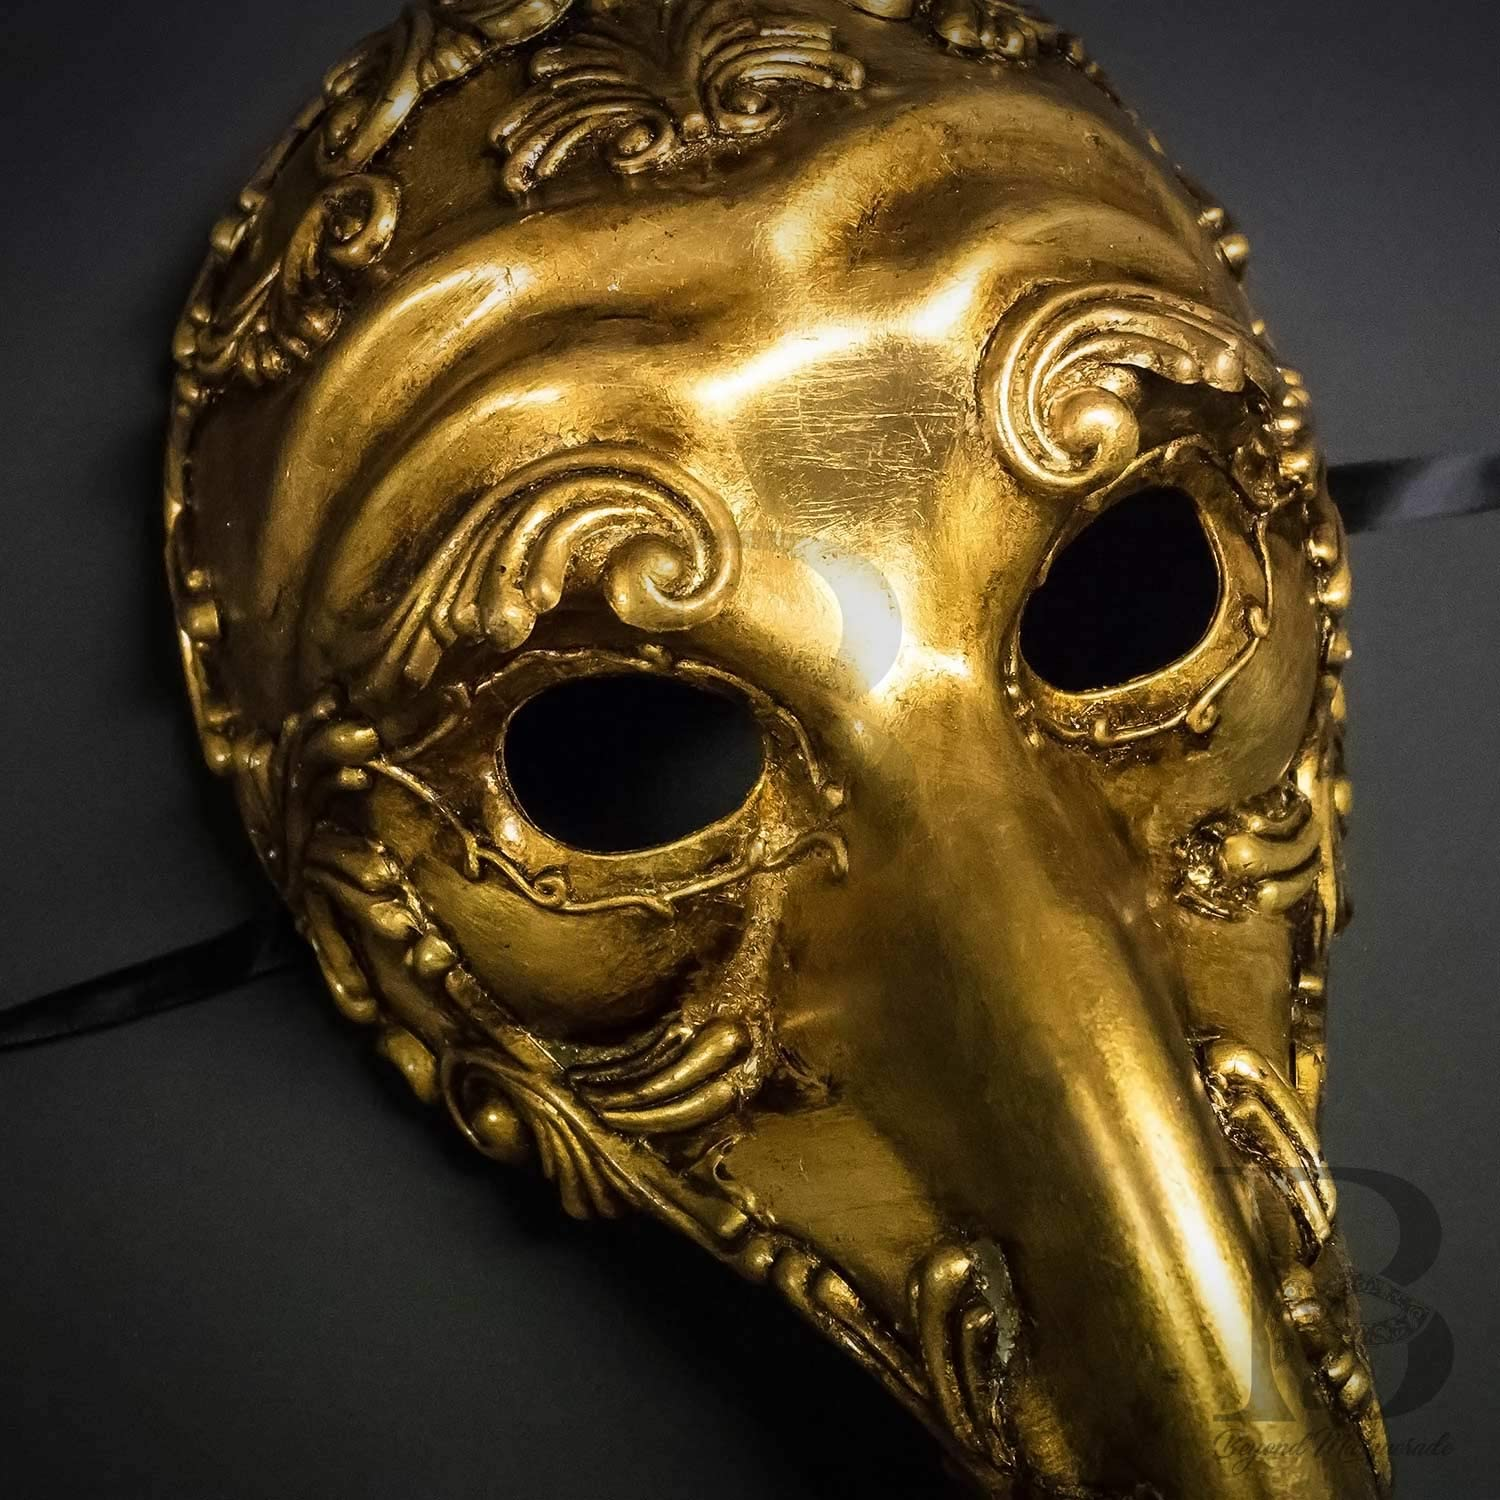 Vintage Gold Plague Doctor Venetian Mask Laser Cut Long-Nosed Masquerade Mask